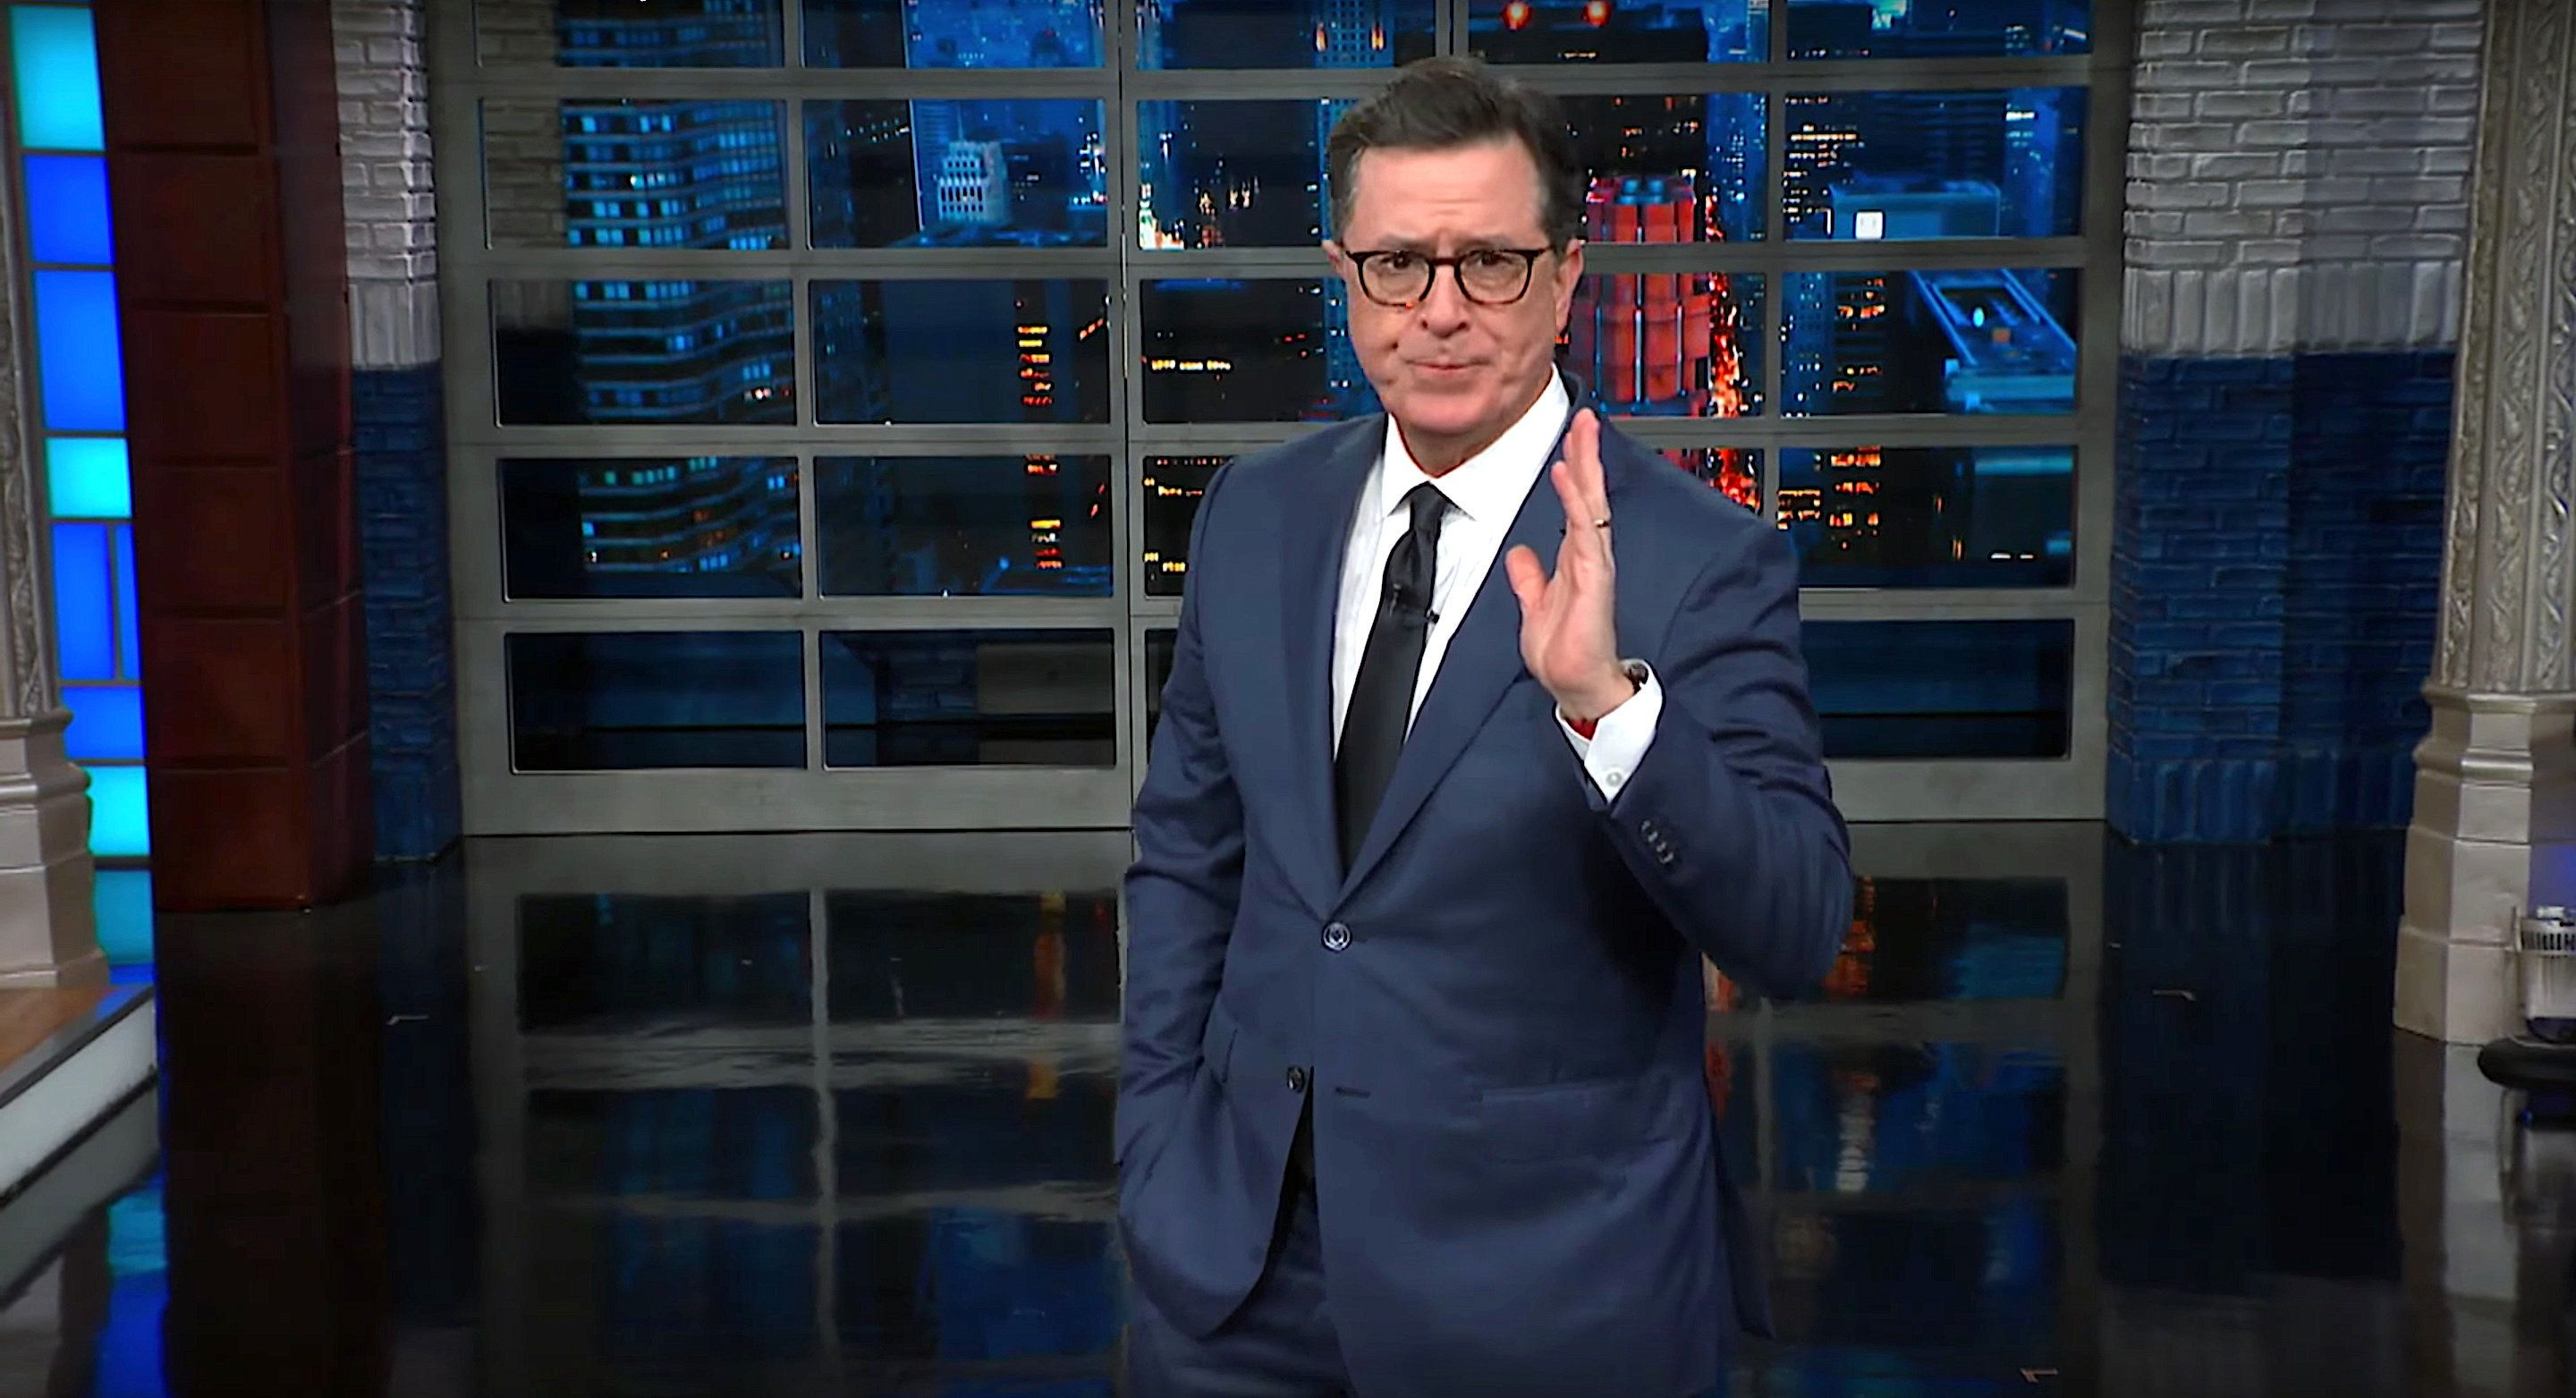 Stephen Colbert Finds Business Opportunities In Trump's Government